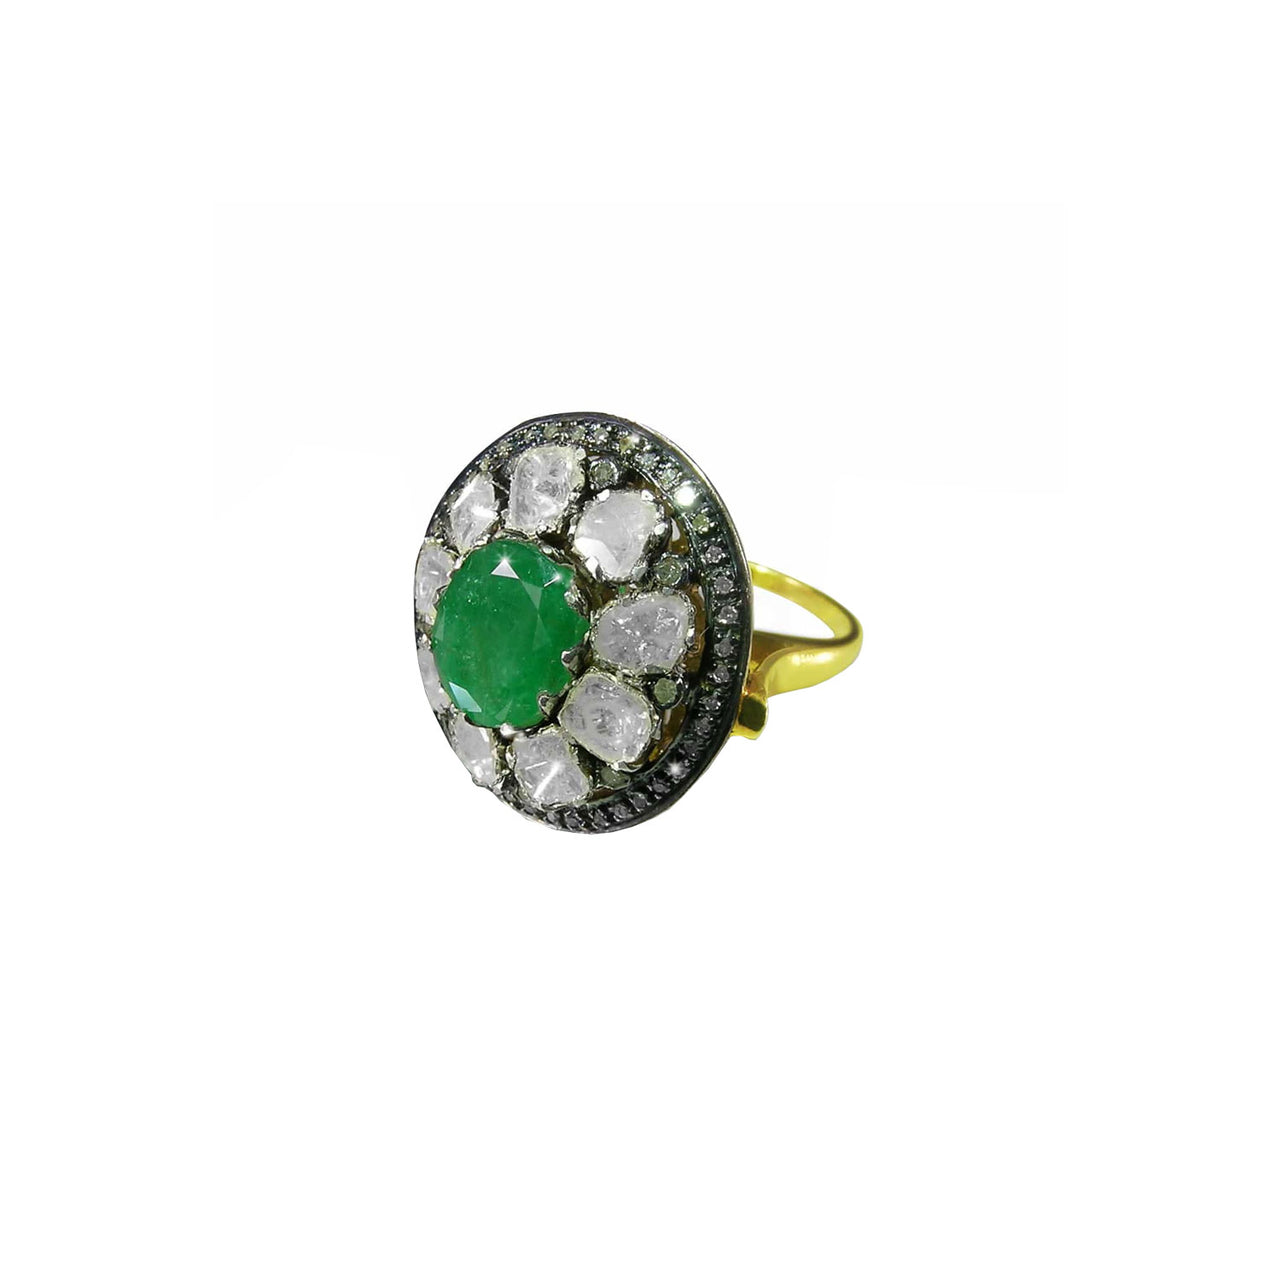 Jaipur Atelier Cabochon Emerald and Diamond Cocktail